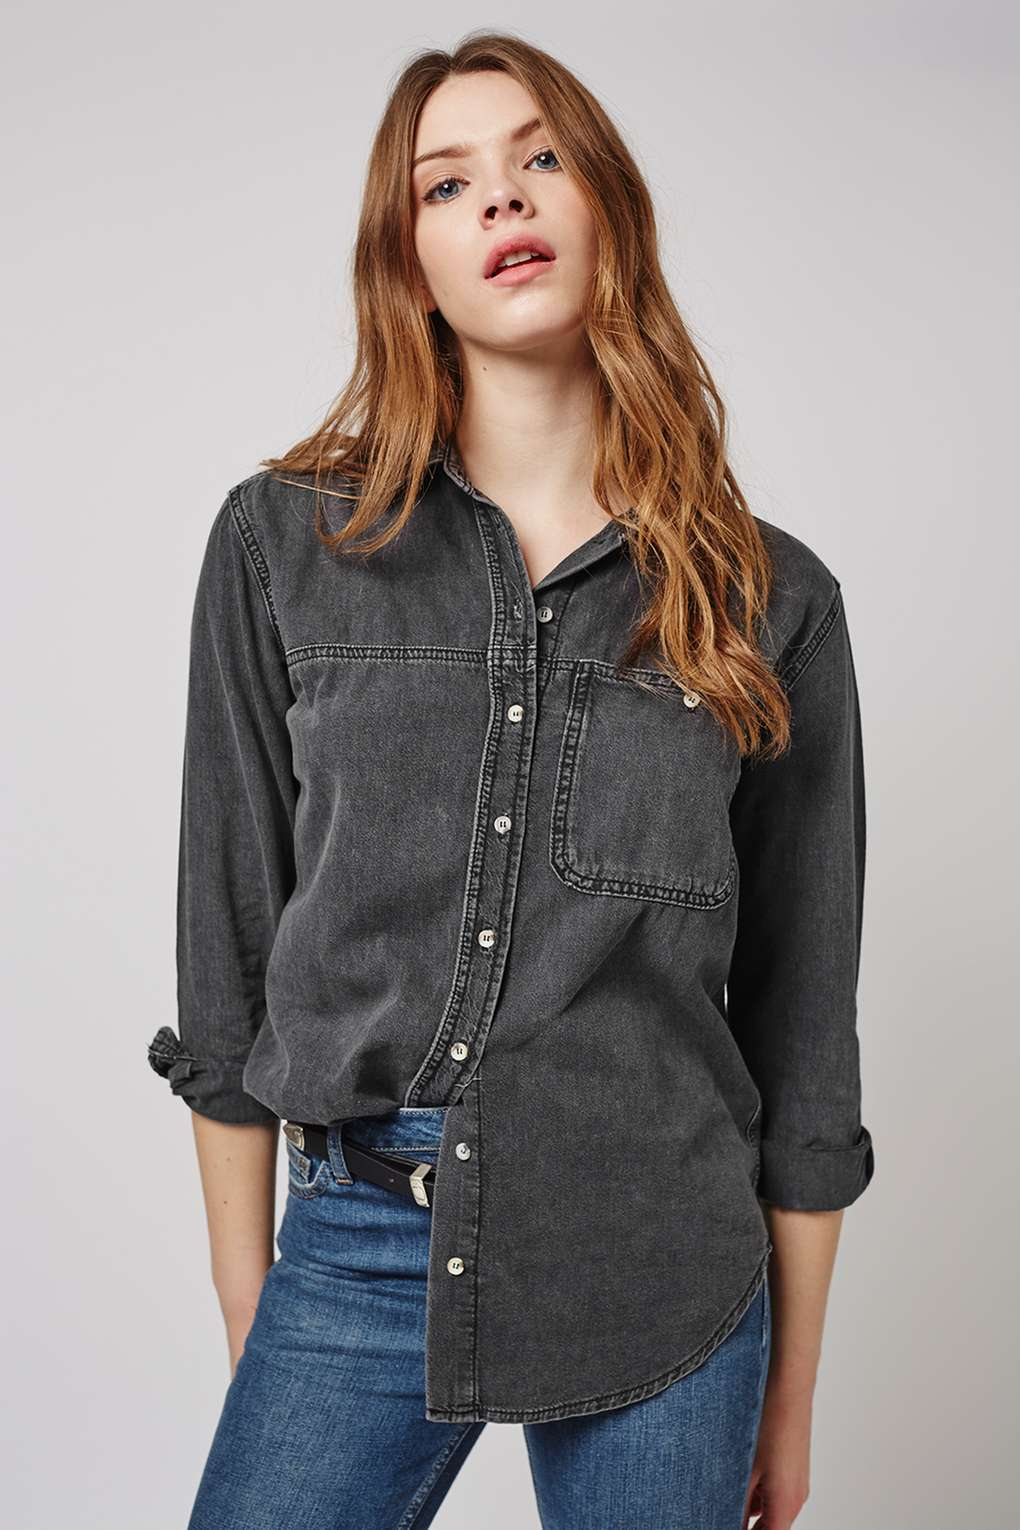 10 cool denim shirts for spring summer 2016 the jeans blog for Womens denim shirts topshop